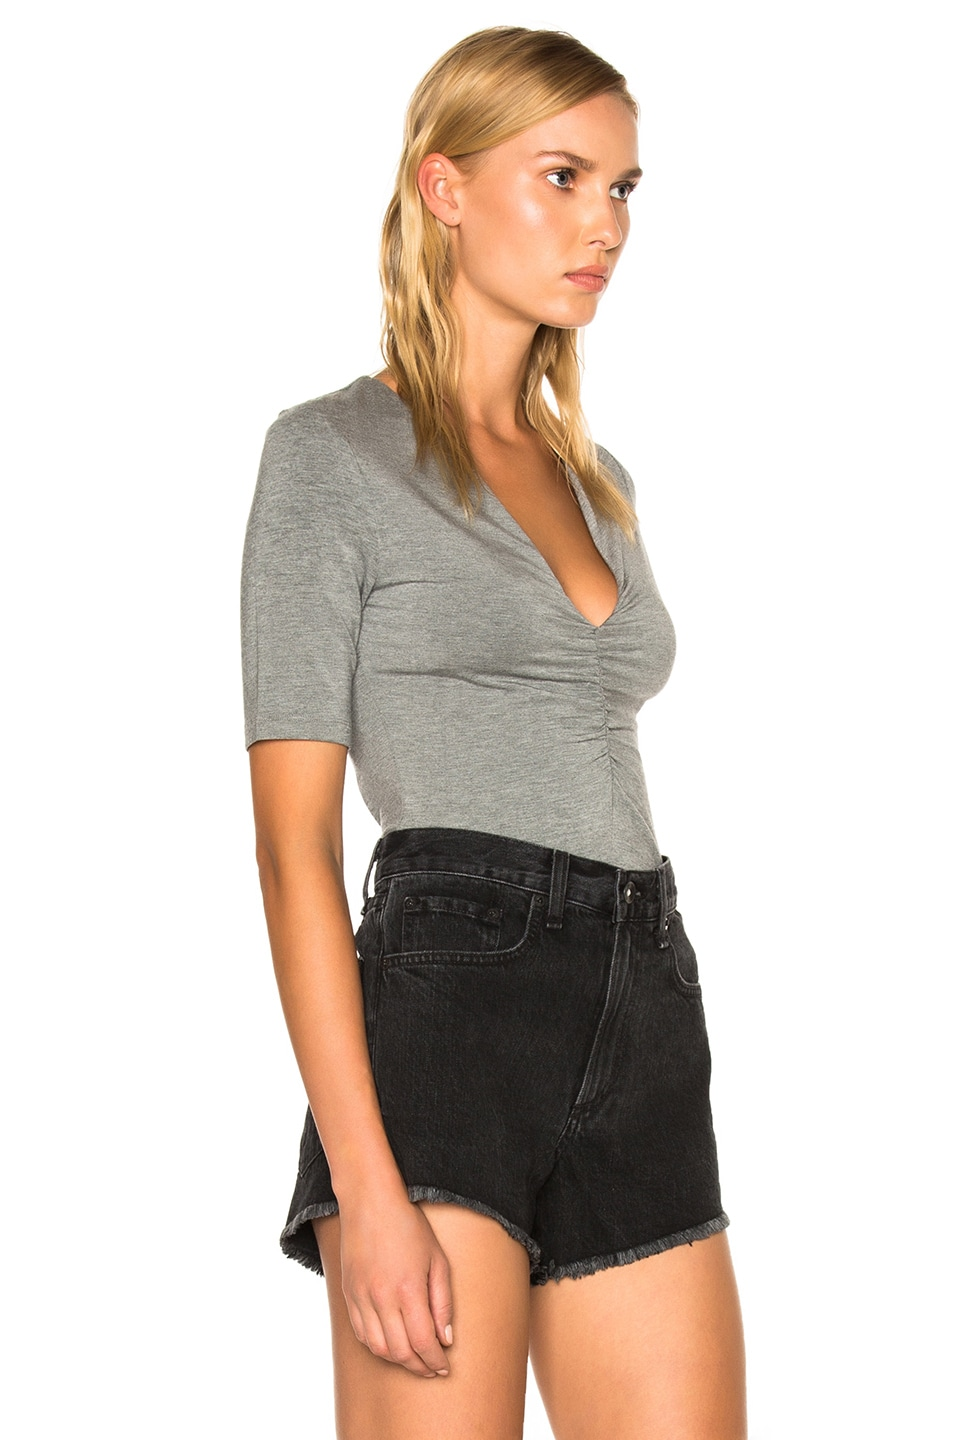 Image 3 of T by Alexander Wang Modal Spandex Shirred Front Short Sleeve Top in Heather Gray